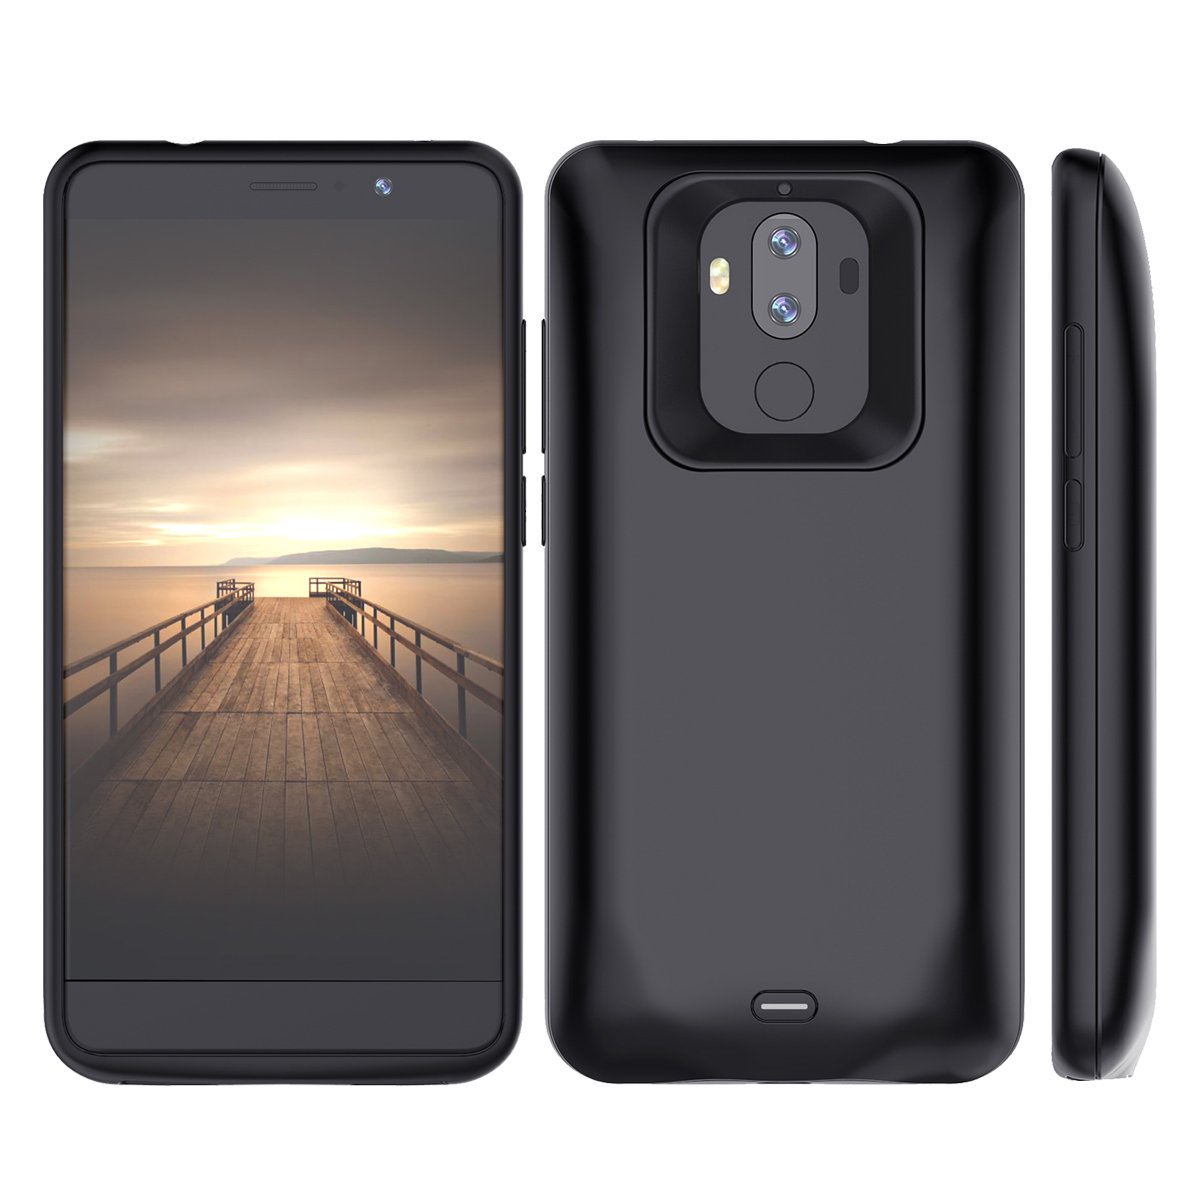 Torubia Huawei Mate 9 Battery Battery Case, Portable Charging Case Replacement for Huawei Mate 9 Battery Extended Battery Juice Power Bank ()